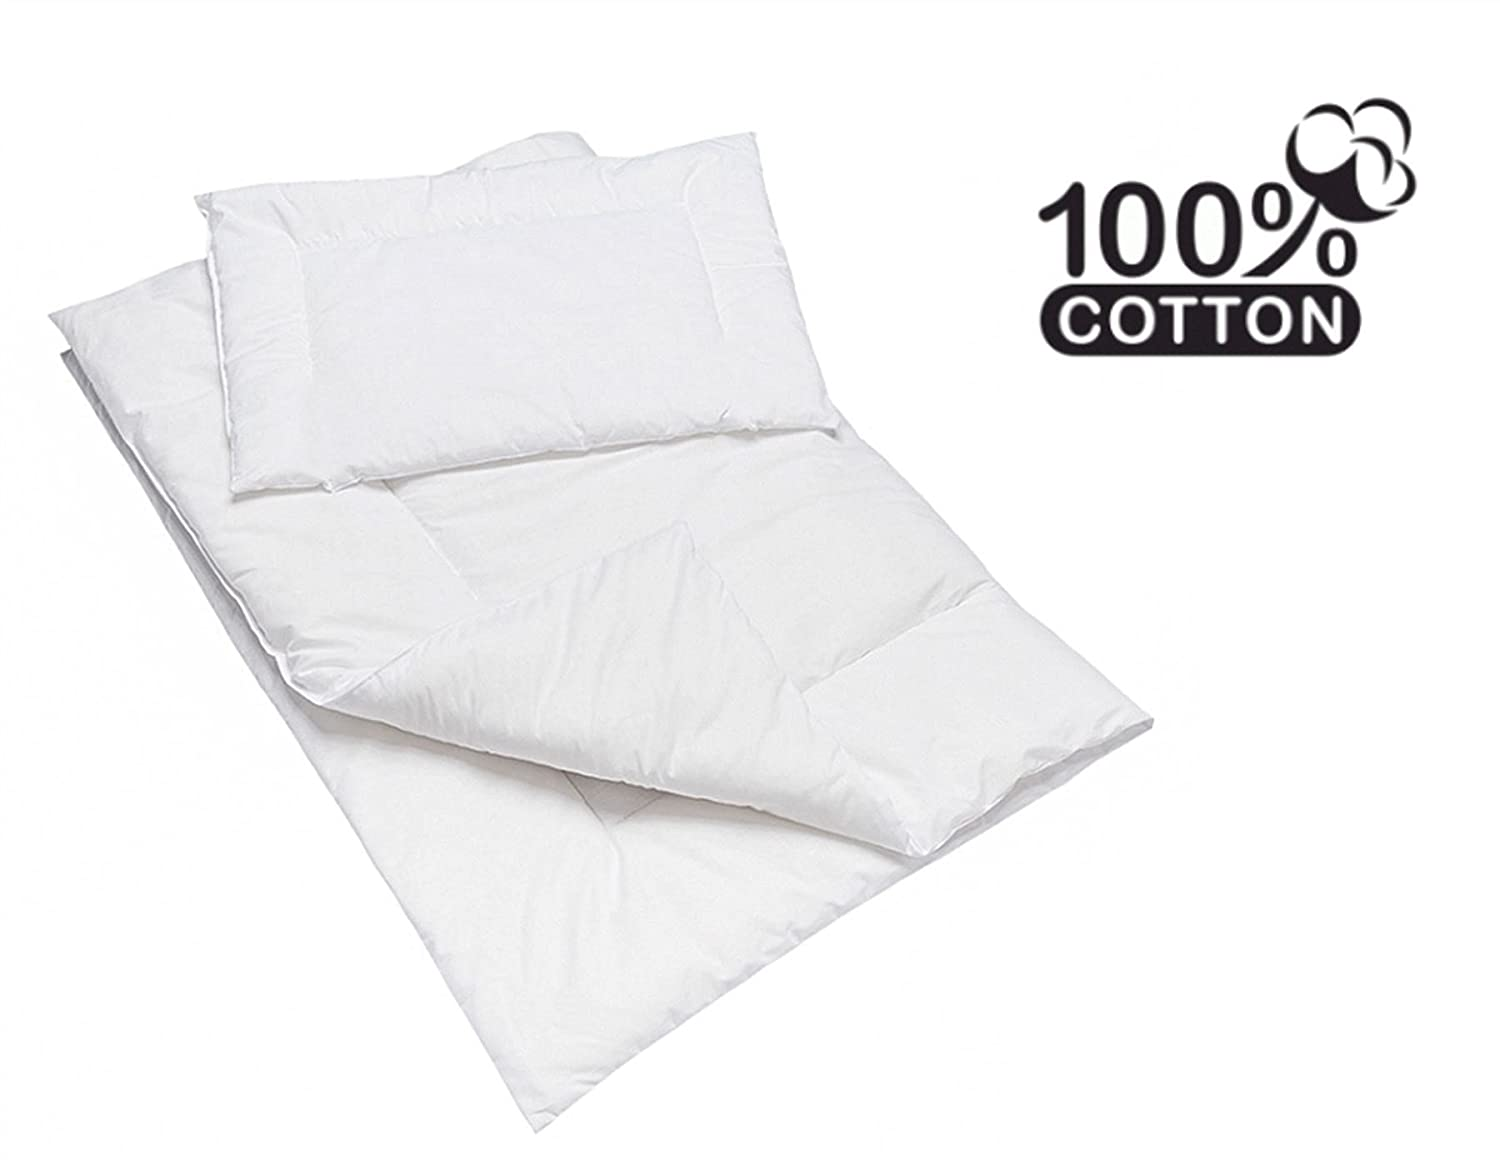 Anti Allergy DUVET & PILLOW Set / Baby Cot Duvet Size 120x90cm - Plain White BabyComfort